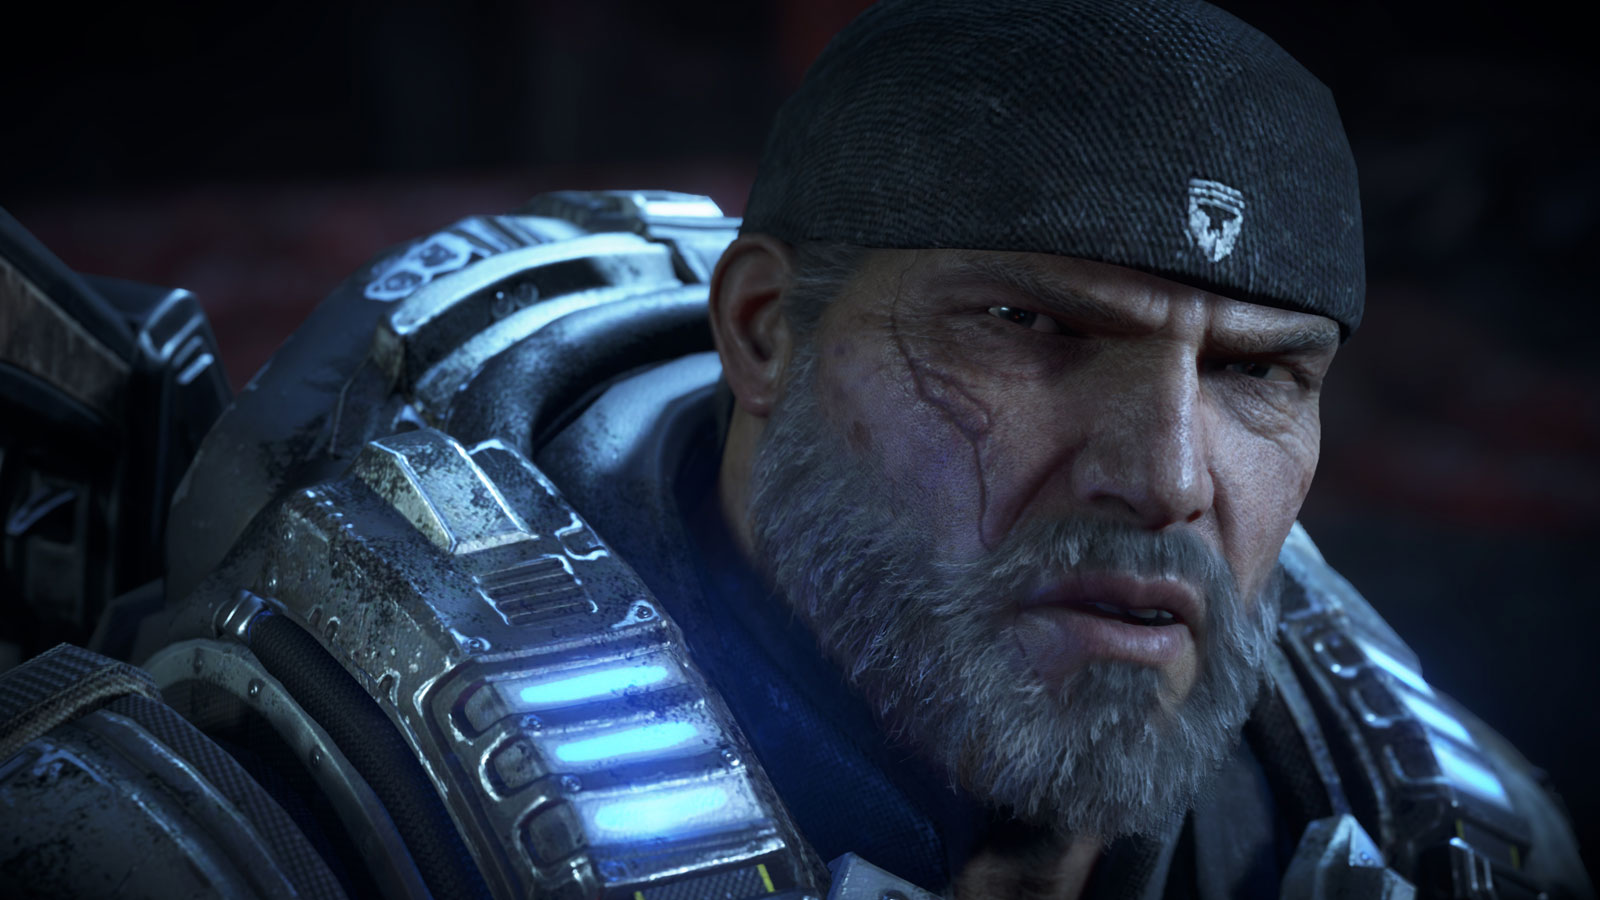 Gears of War 4 revisits Marcus Fenix as an old man.